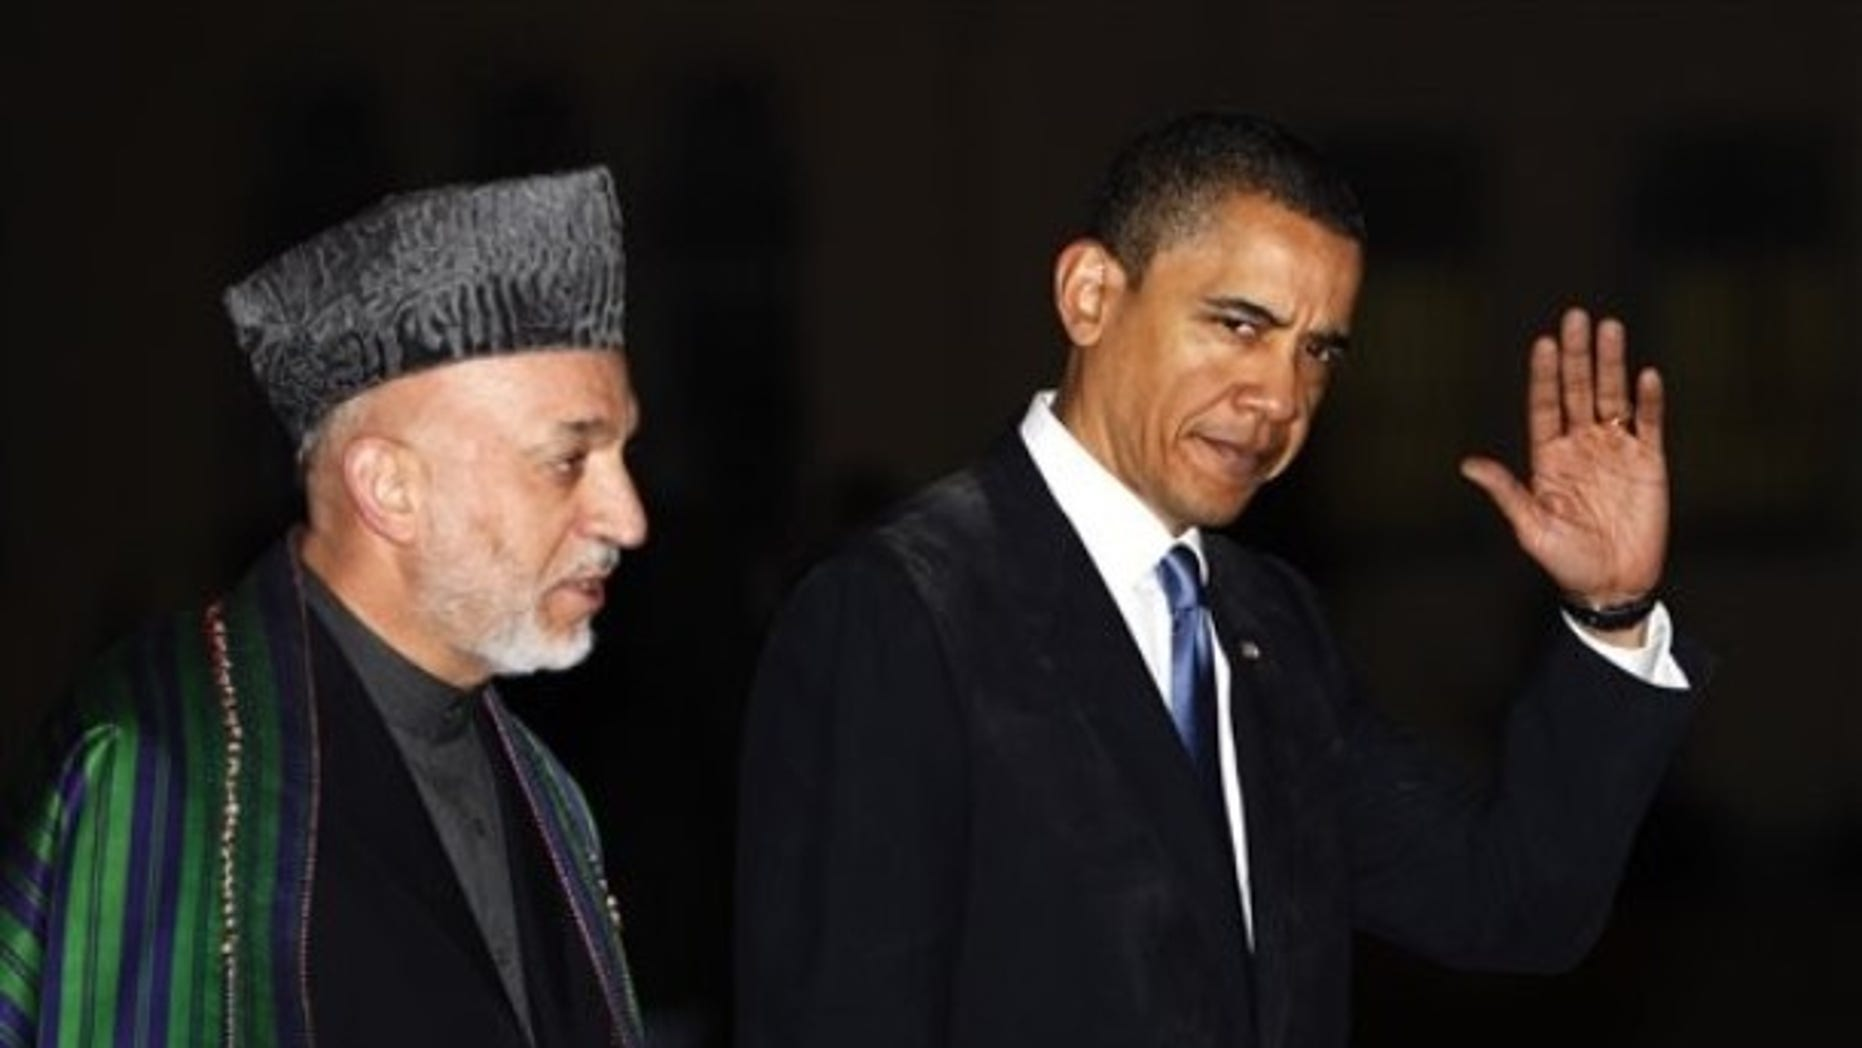 March 28, 2010: President Obama meets with Afghan President Hamid Karzai, left, at the presidential palace in Kabul, Afghanistan.